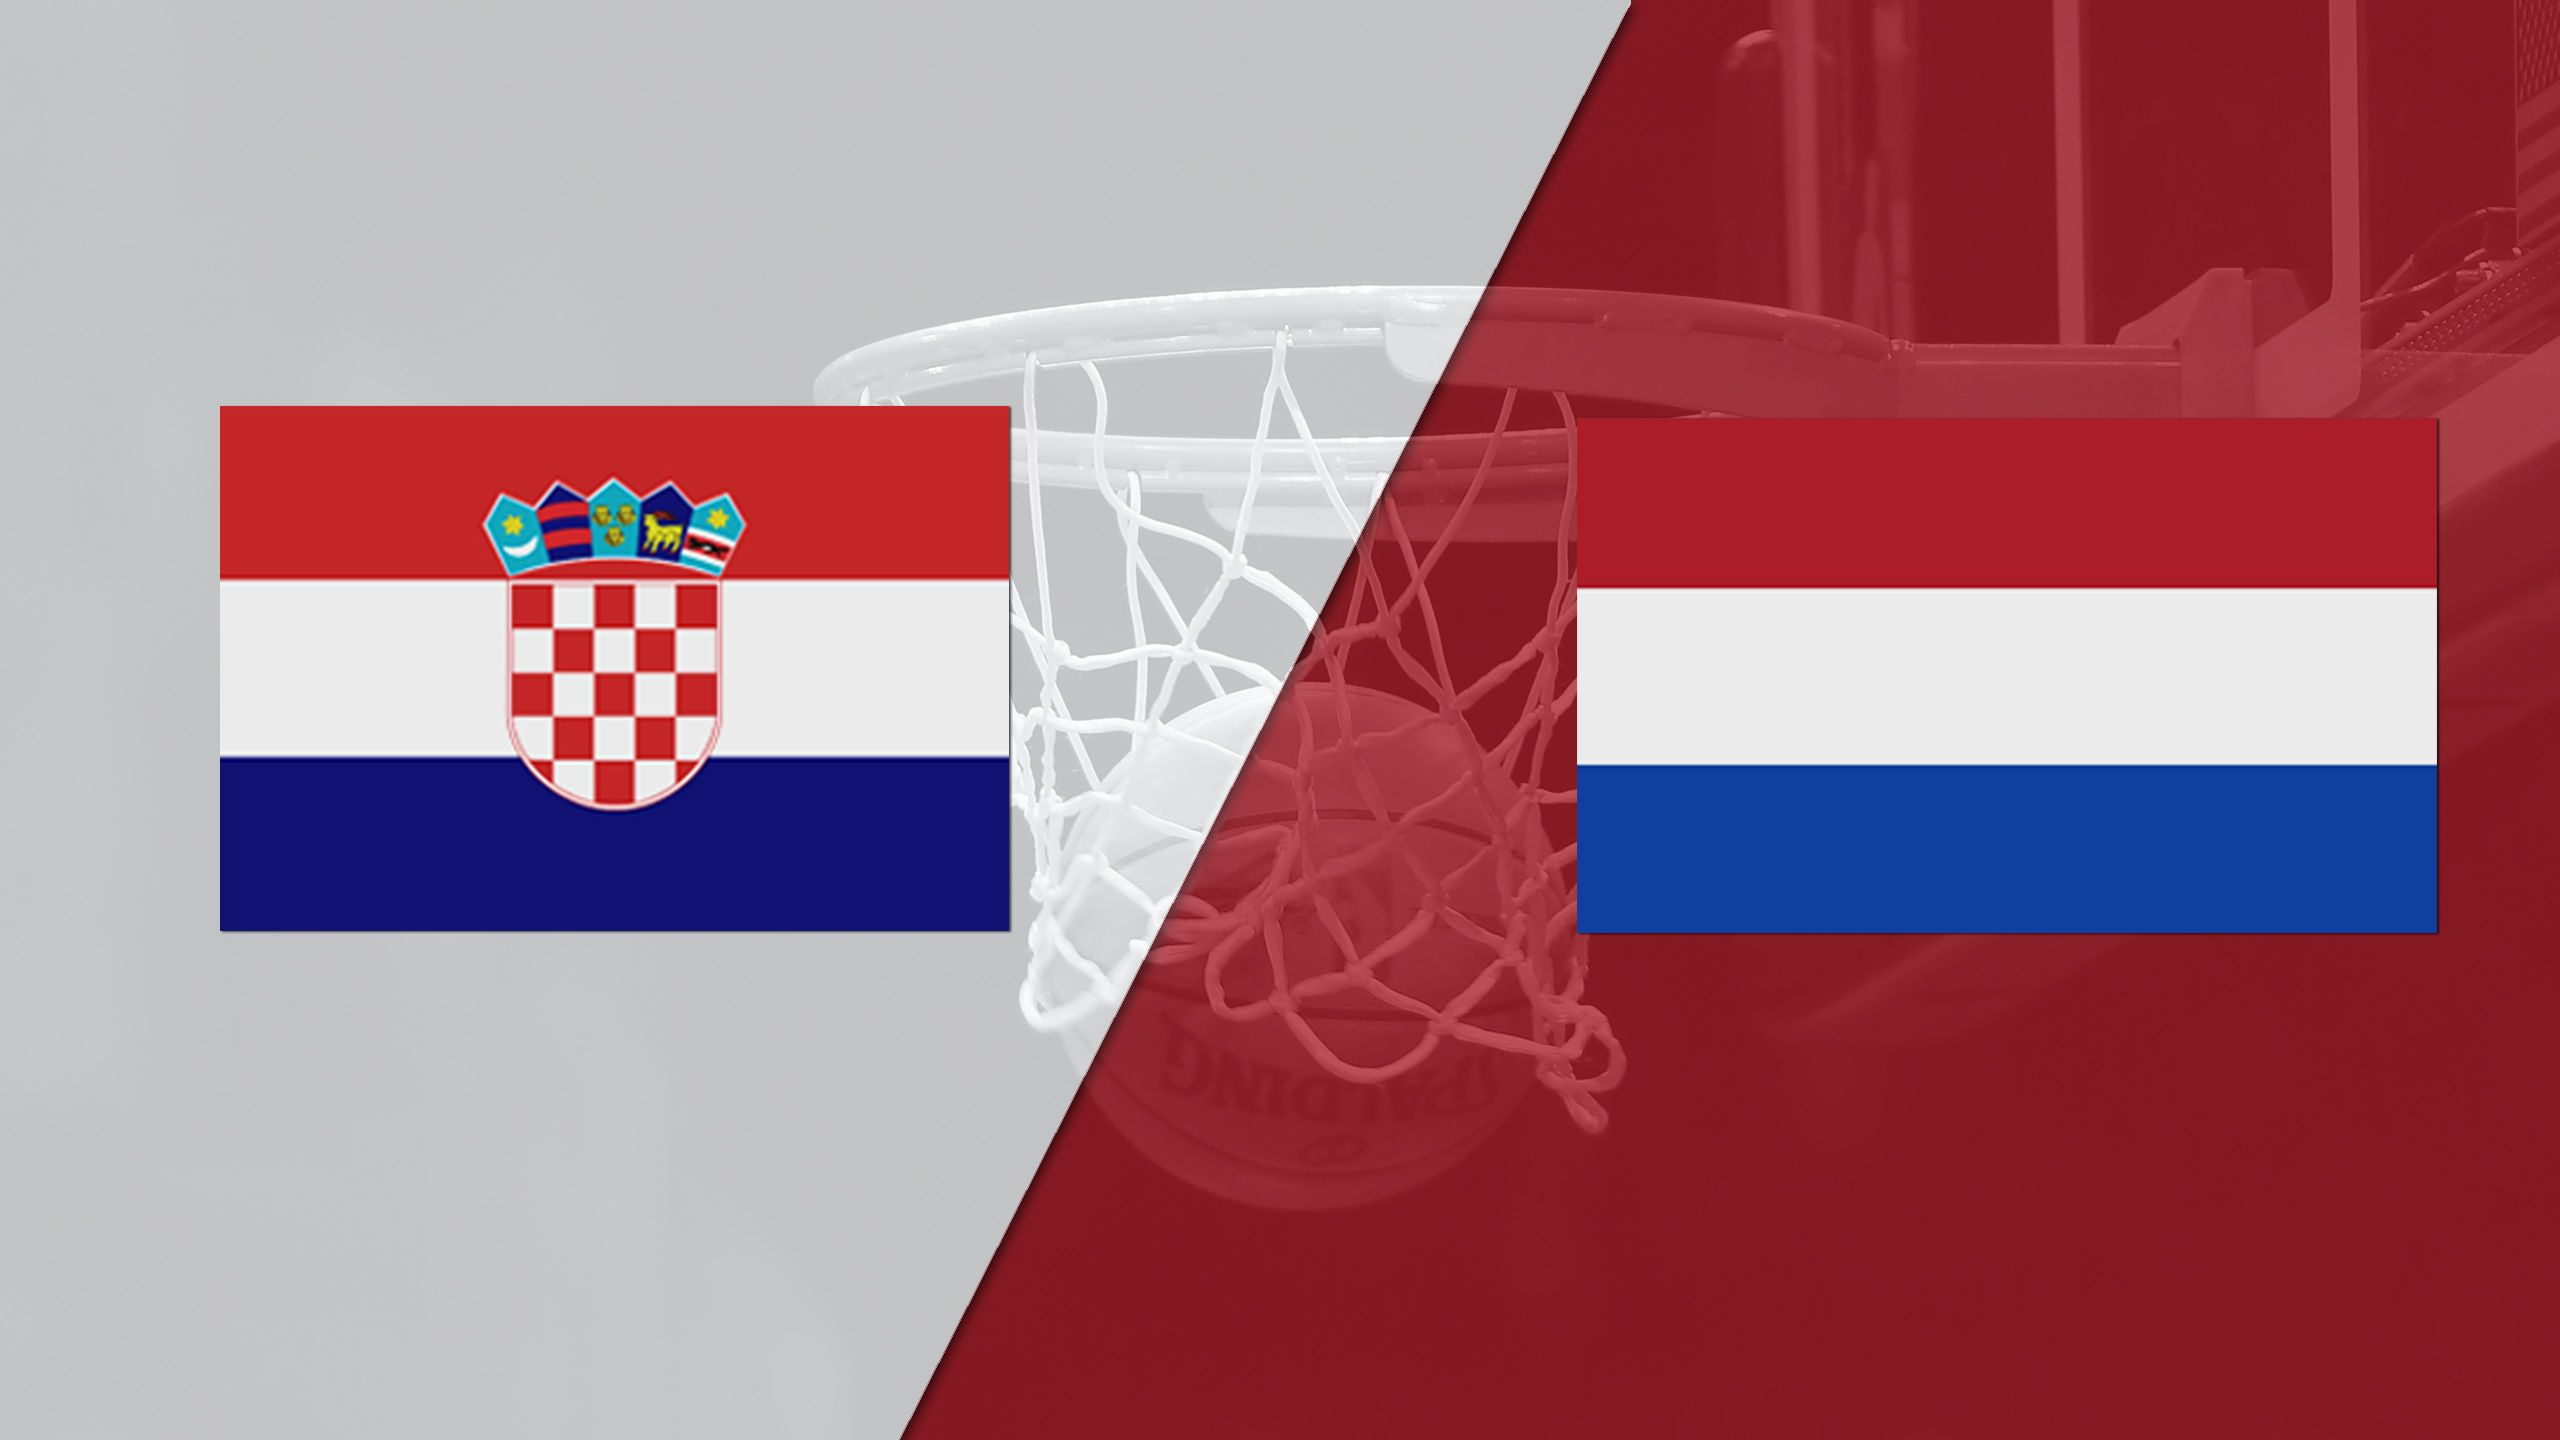 Croatia vs. Netherlands (FIBA World Cup 2019 Qualifier)